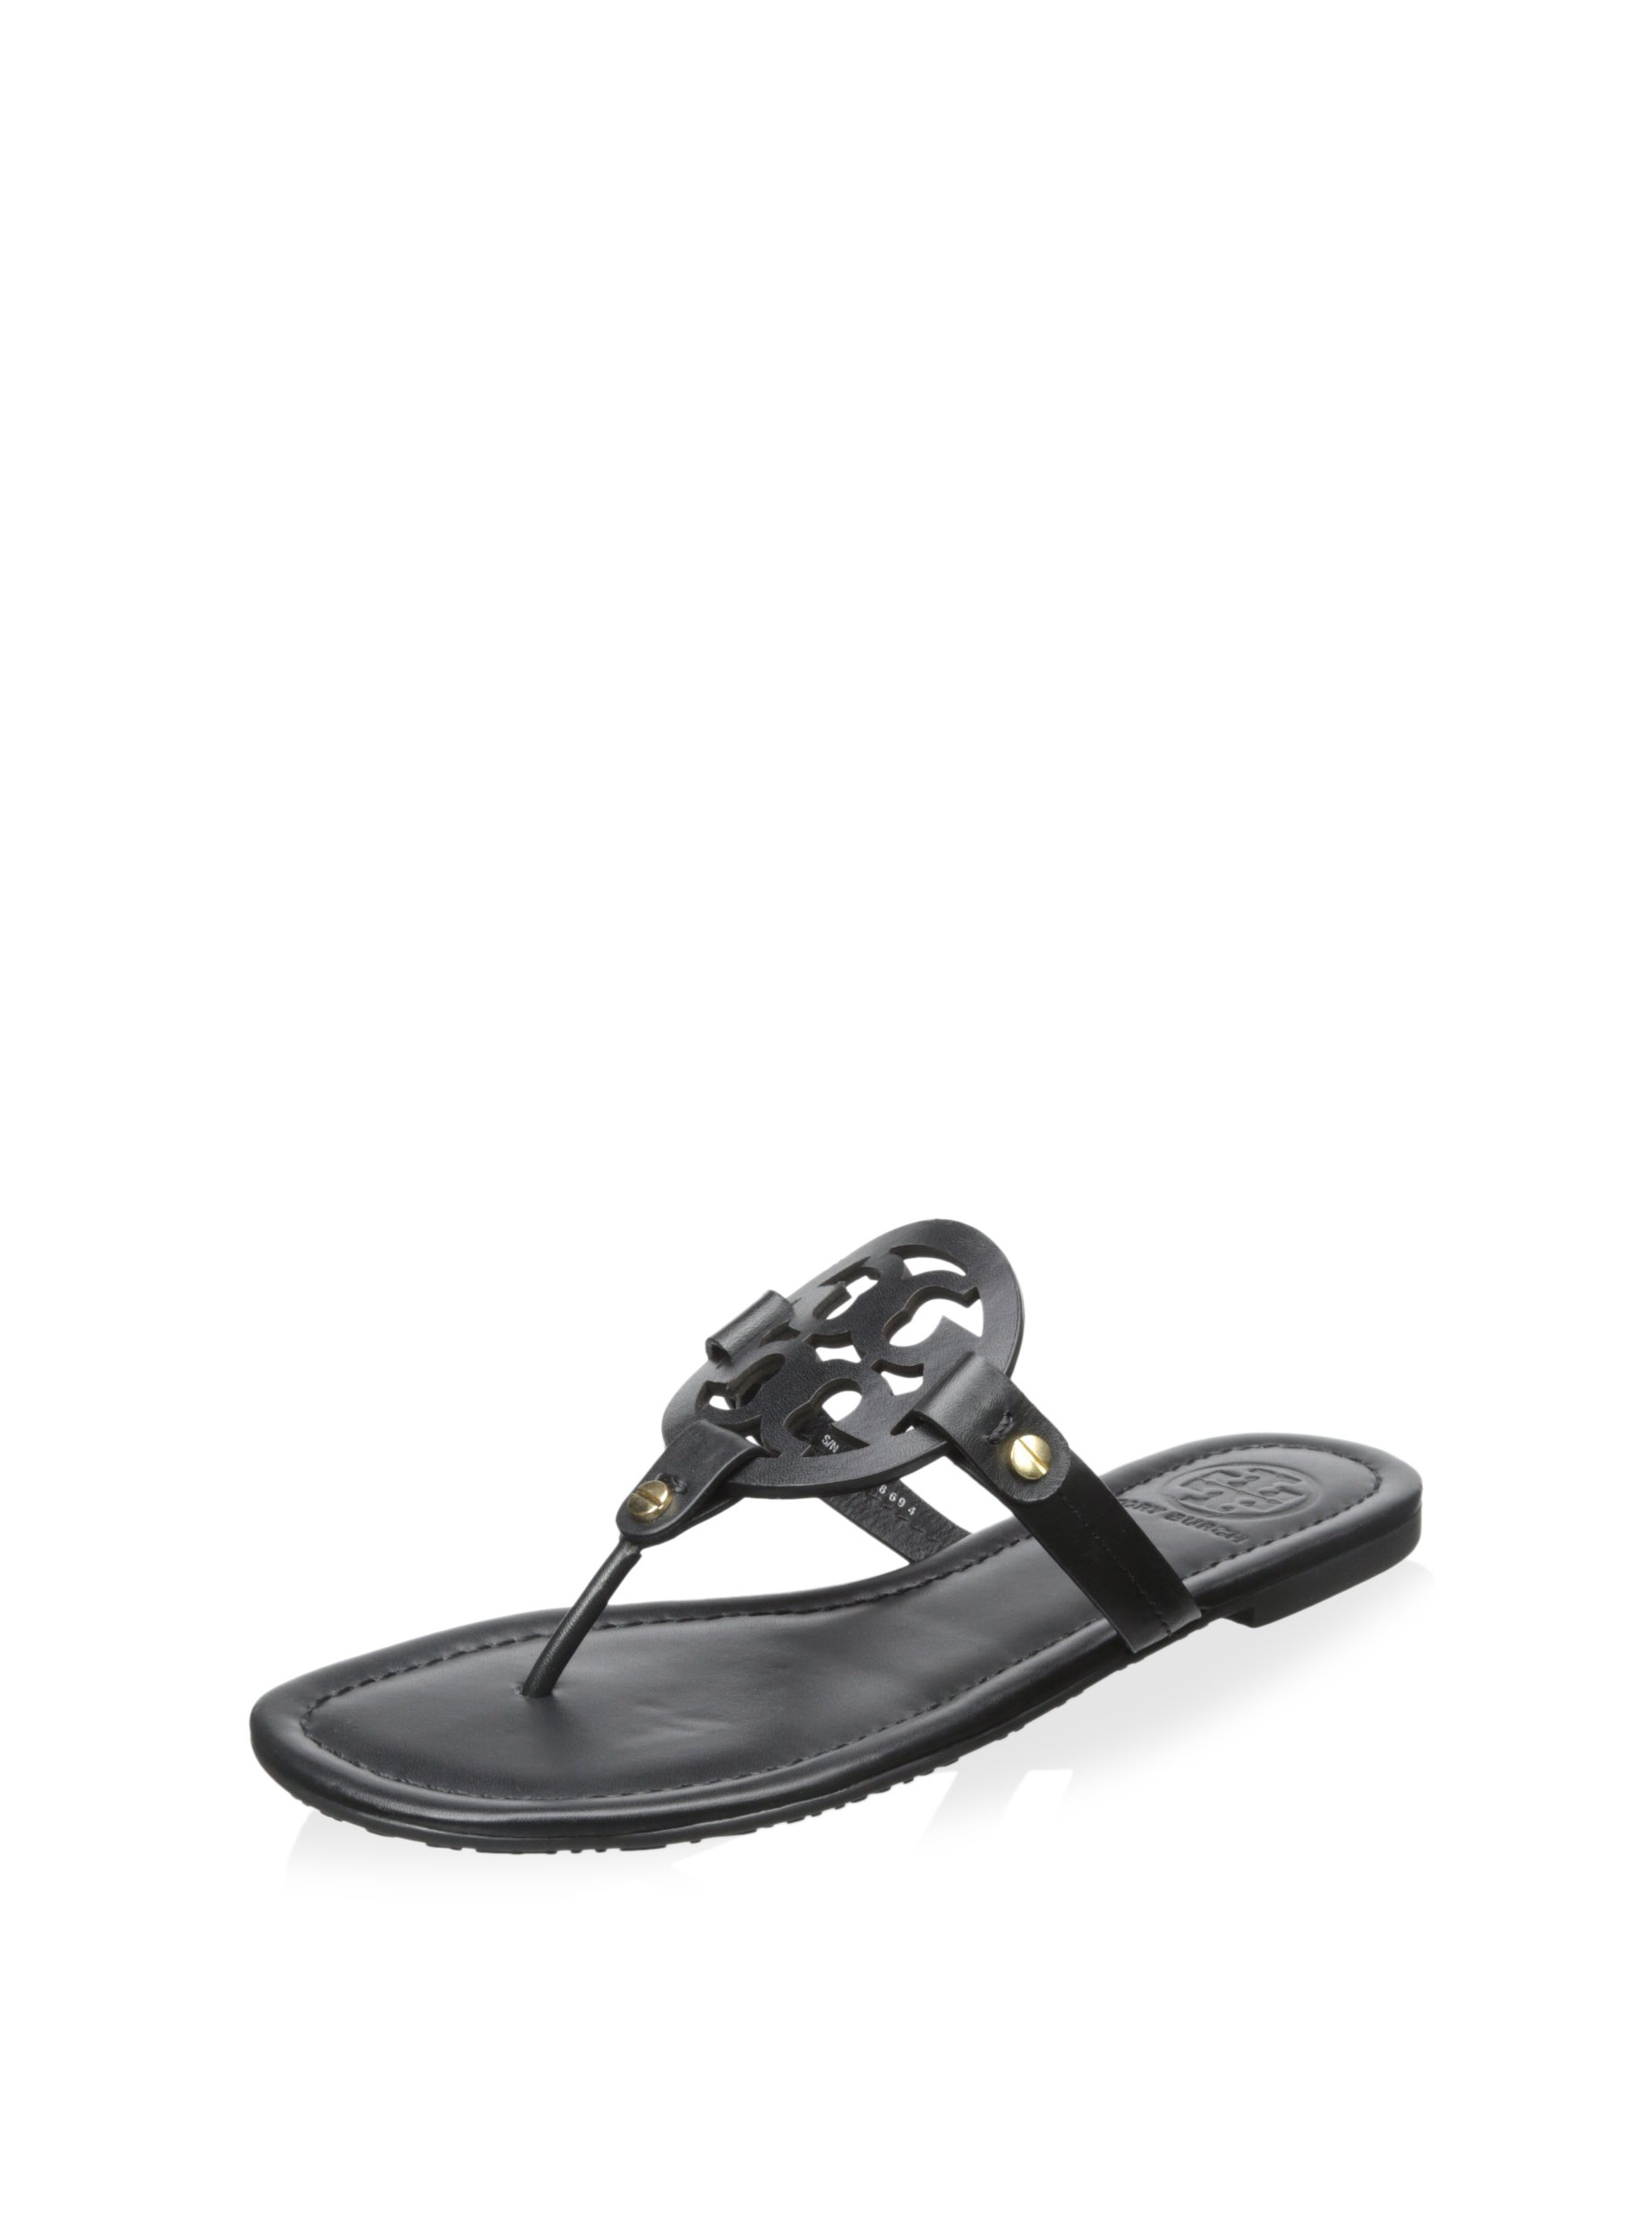 Tory Burch Women's Miller Leather Sandal (8.5, Black)